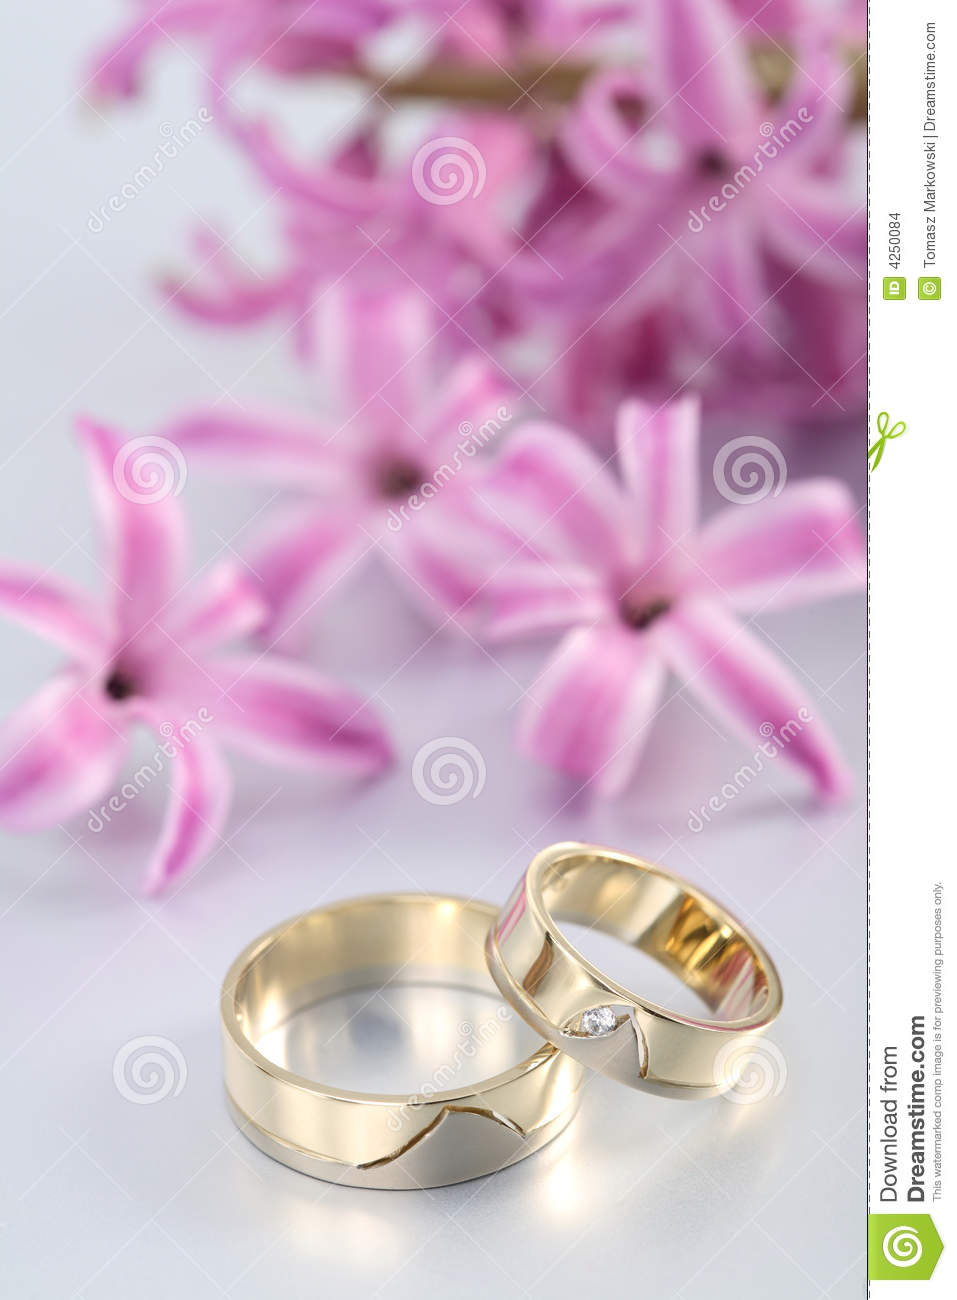 Wedding Rings & Purple Blooms Stock Photo - Image of commitment ...